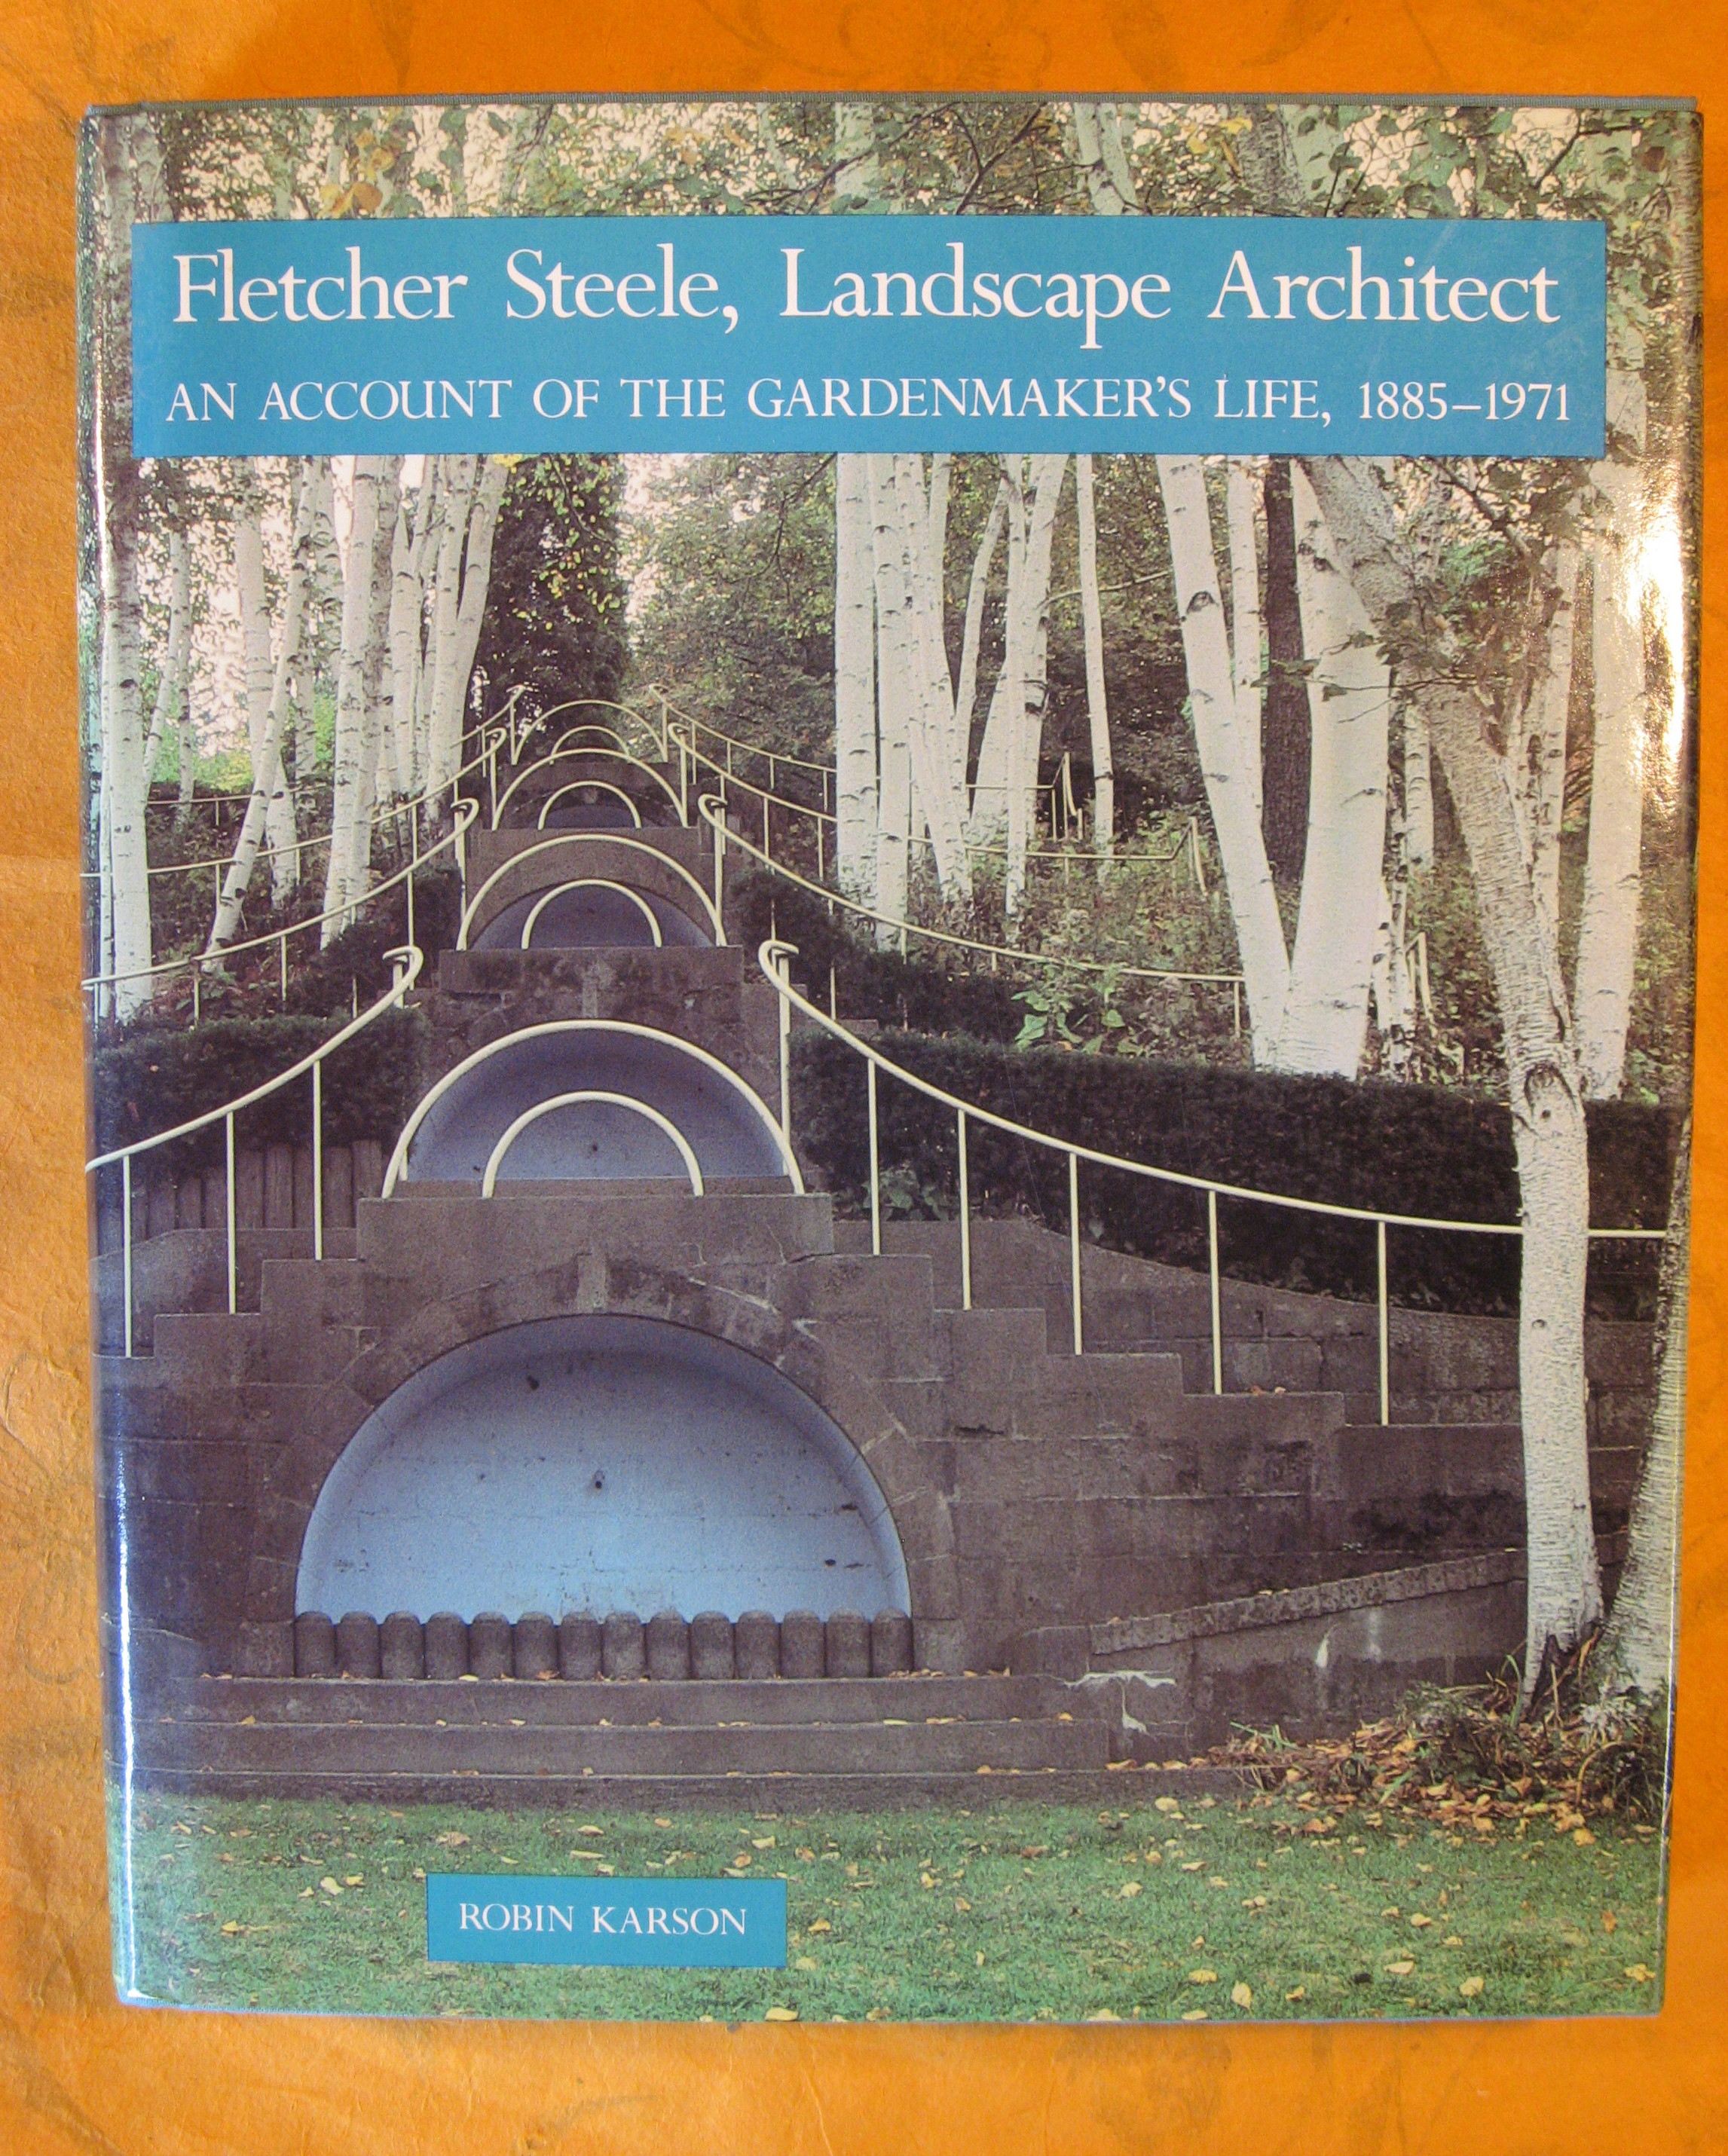 Image for Fletcher Steele, Landscape Architect: An Account of the Gardenmaker's Life, 1885-1971